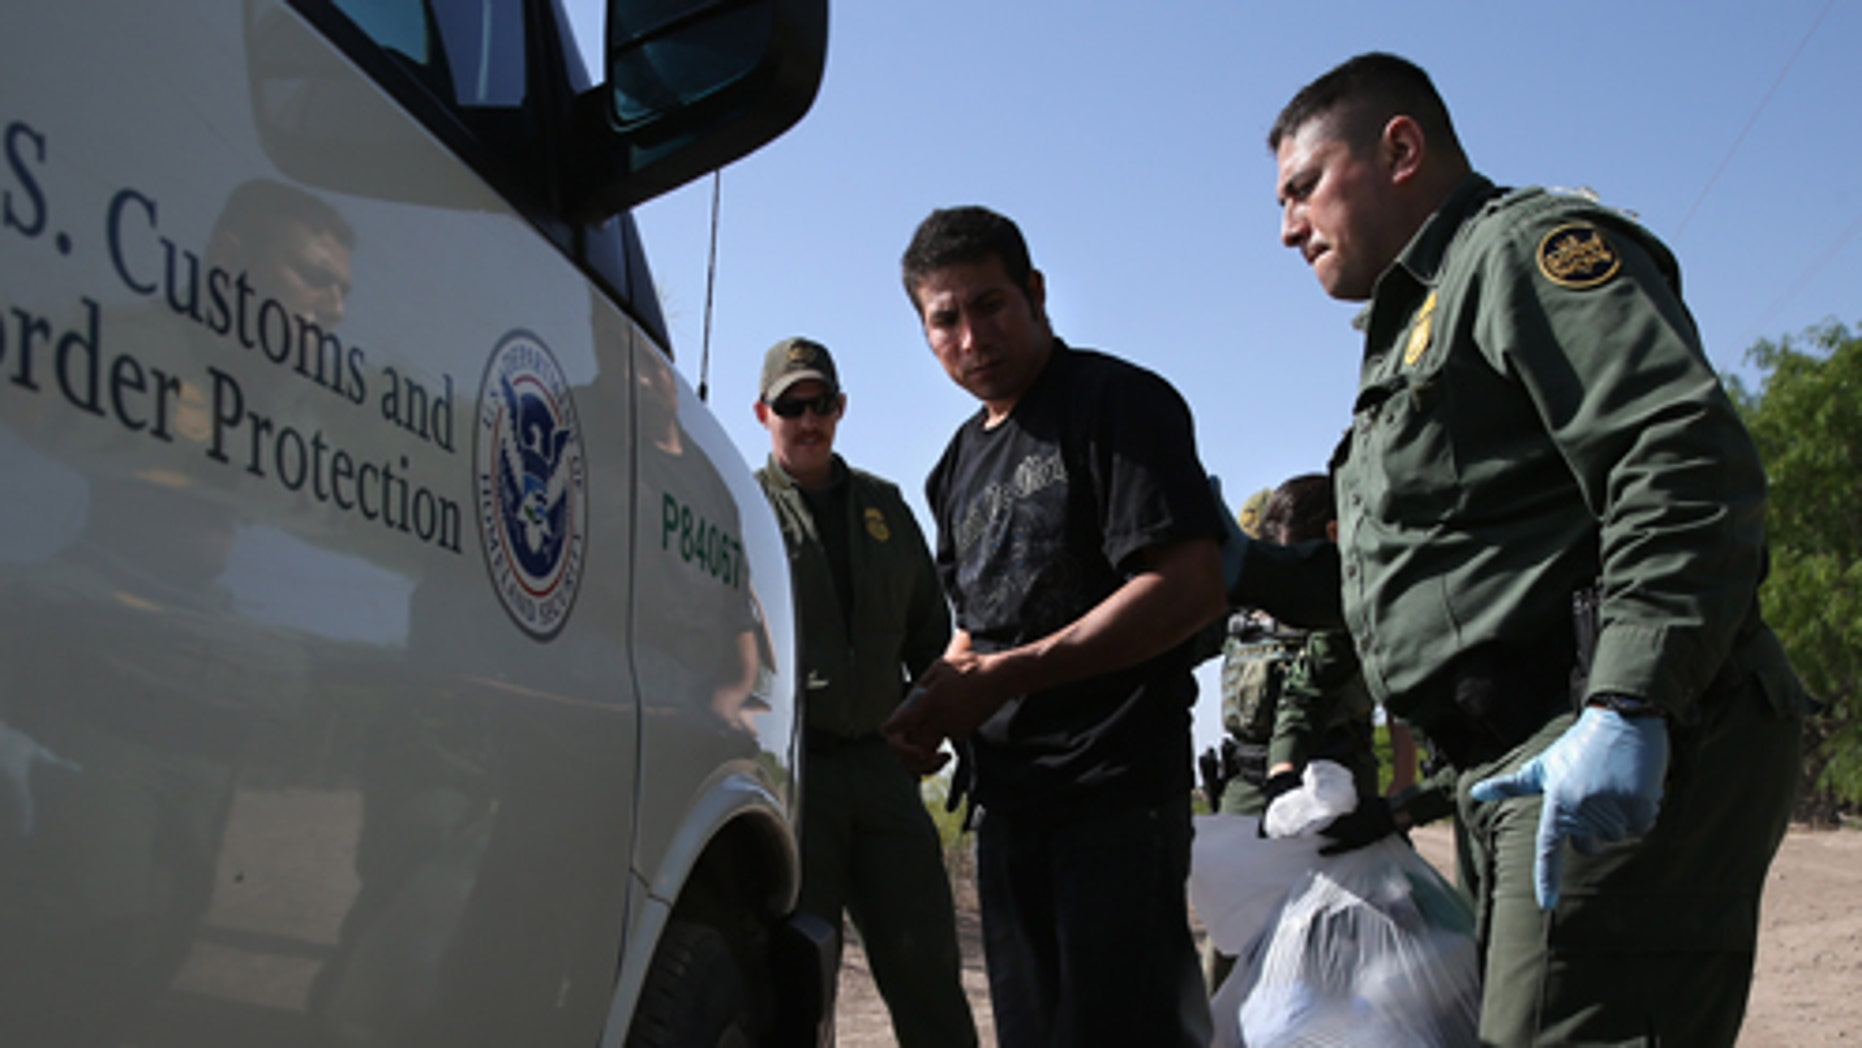 MISSION, TX - APRIL 11:  U.S. Border Patrol agents detain undocumented immigrants near the U.S.-Mexico border on April 11, 2013 near Mission, Texas. A group of 16 immigrants from Mexico and El Salvador said they crossed the Rio Grande River from Mexico into Texas during the morning hours before they were caught. The Rio Grande Valley sector of has seen more than a 50 percent increase in illegal immigrant crossings from last year, according to the Border Patrol. Agents say they have also seen an additional surge in immigrant traffic since immigration reform negotiations began this year in Washington D.C. Proposed refoms could provide a path to citizenship for many of the estimated 11 million undocumented workers living in the United States. Photo by John Moore/Getty Images)  (Photo by John Moore/Getty Images)